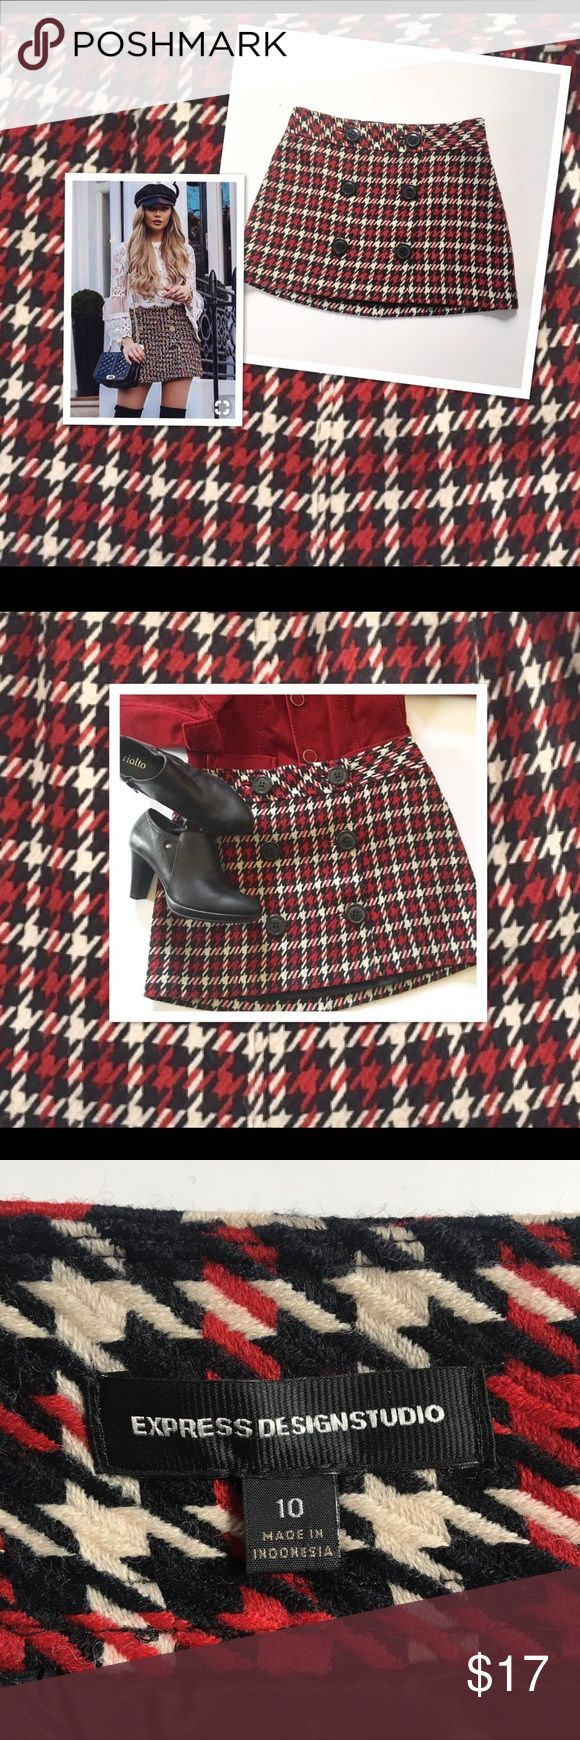 EXPRESS DESIGN STUDIO Red Plaid Mini Skirt Size 10 This adorable EXPRESS DESIGN STUDIO skirt is just perfect for that schoolgirl look :) Size 10 see pics for a better fit :) Skirt is in good preowned condition :)  colors black red and Ivory NOTE : PIC OF MODEL IS FOR STYLING SUGGESTION , skirt is not exact but very similar :) Express Design Studio Skirts Mini